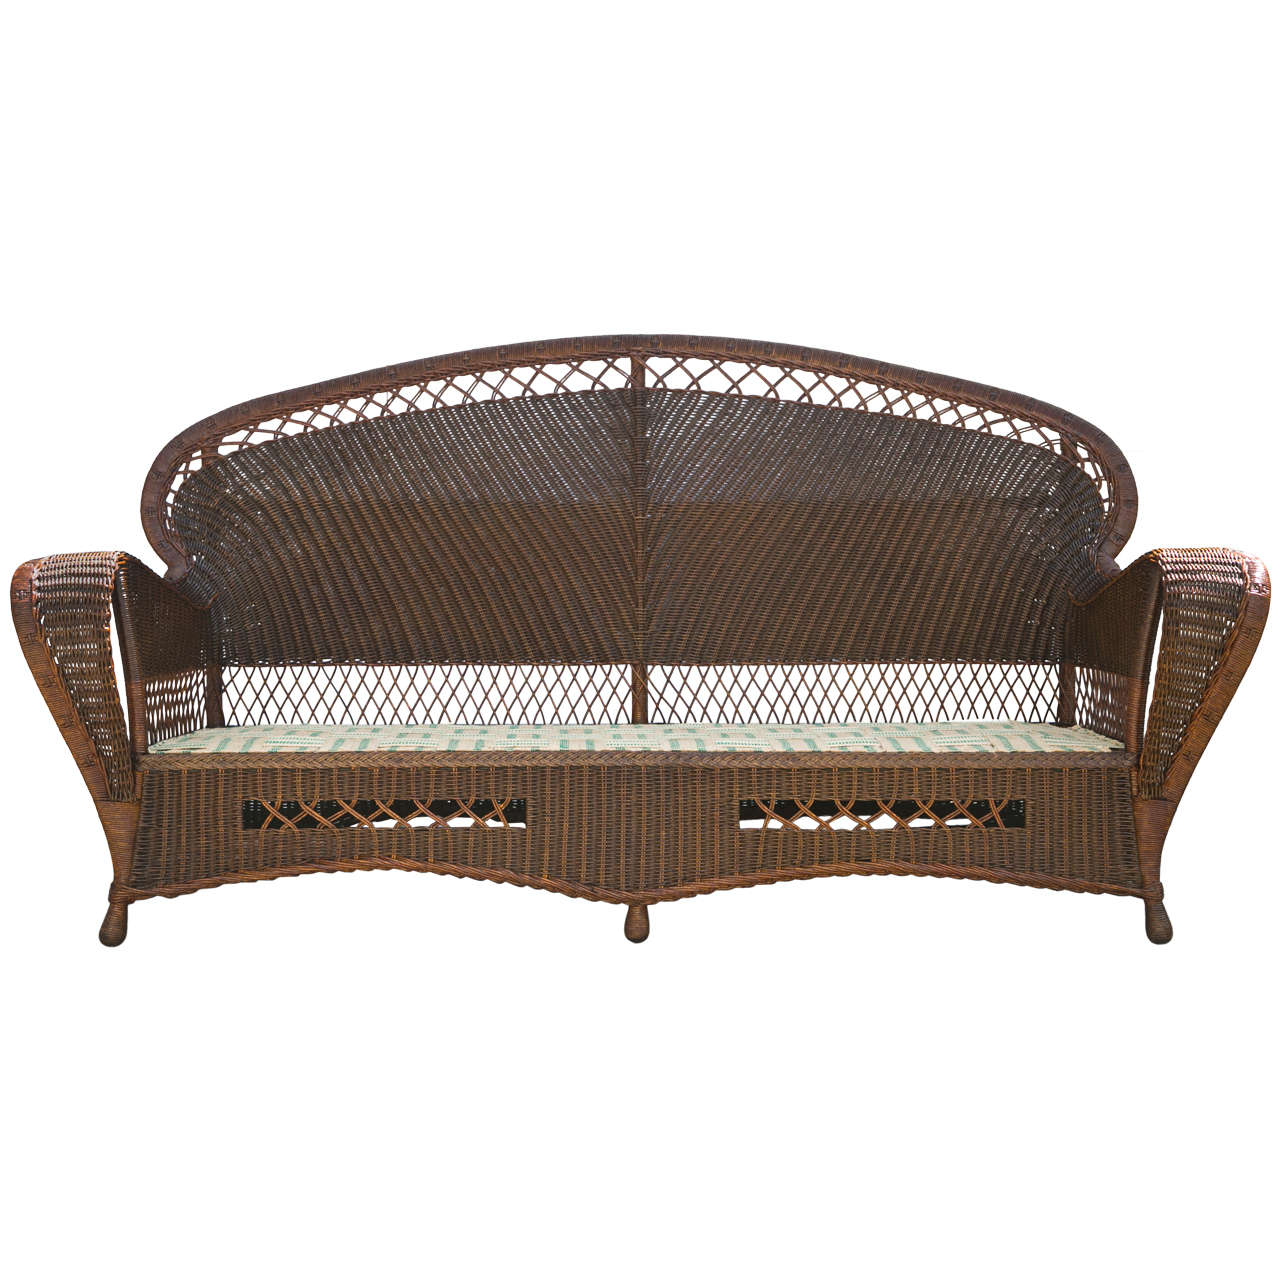 antique wicker sofa and chairs at 1stdibs. Black Bedroom Furniture Sets. Home Design Ideas